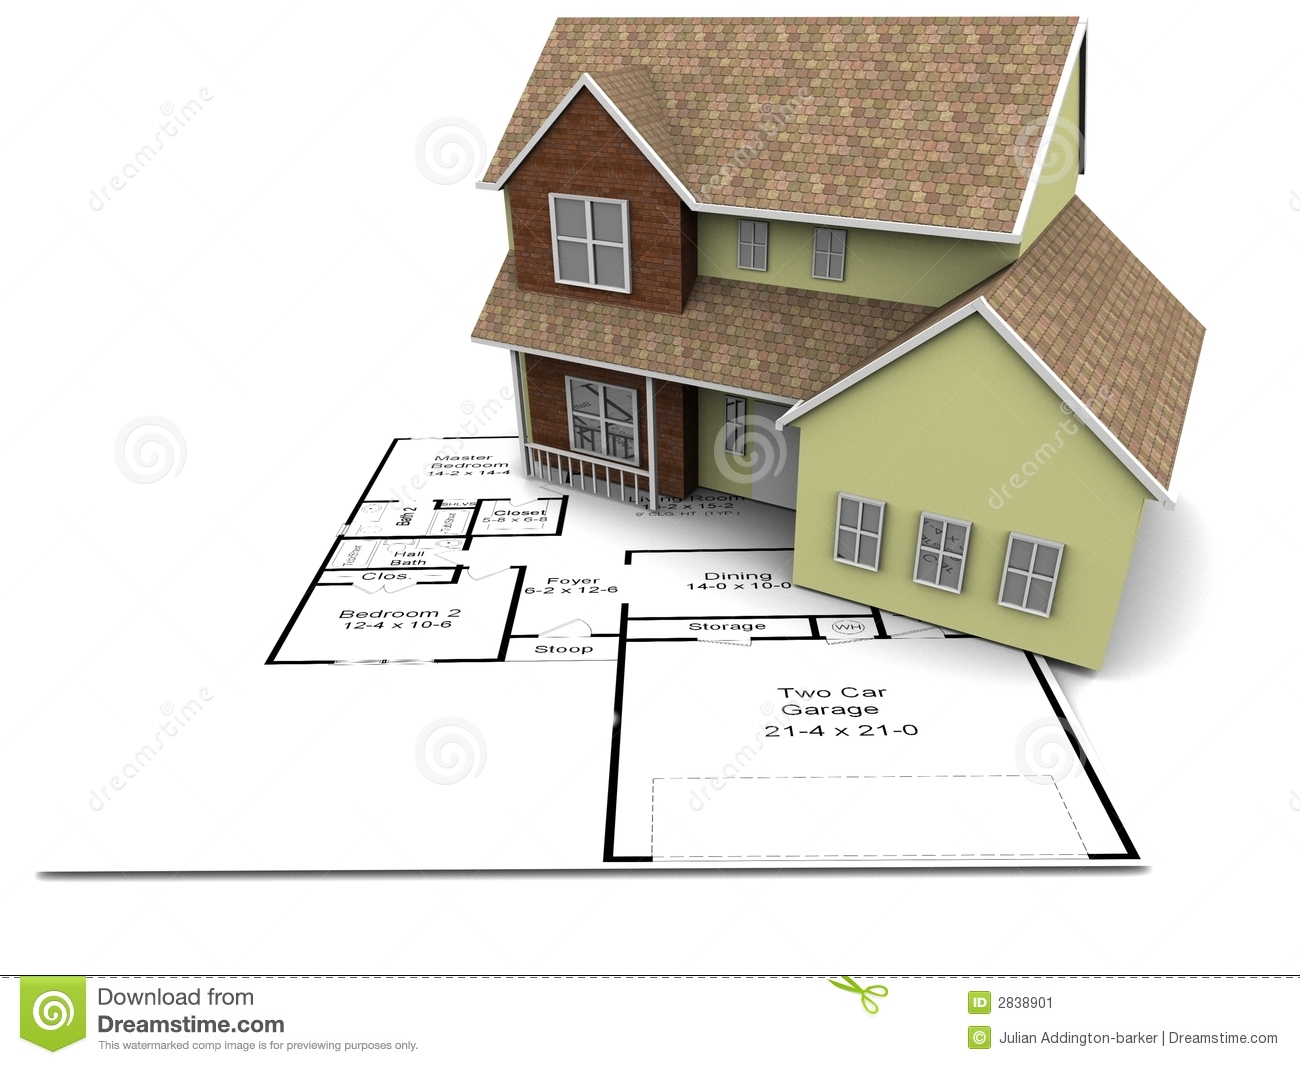 New house plans stock illustration illustration of house New home design plans